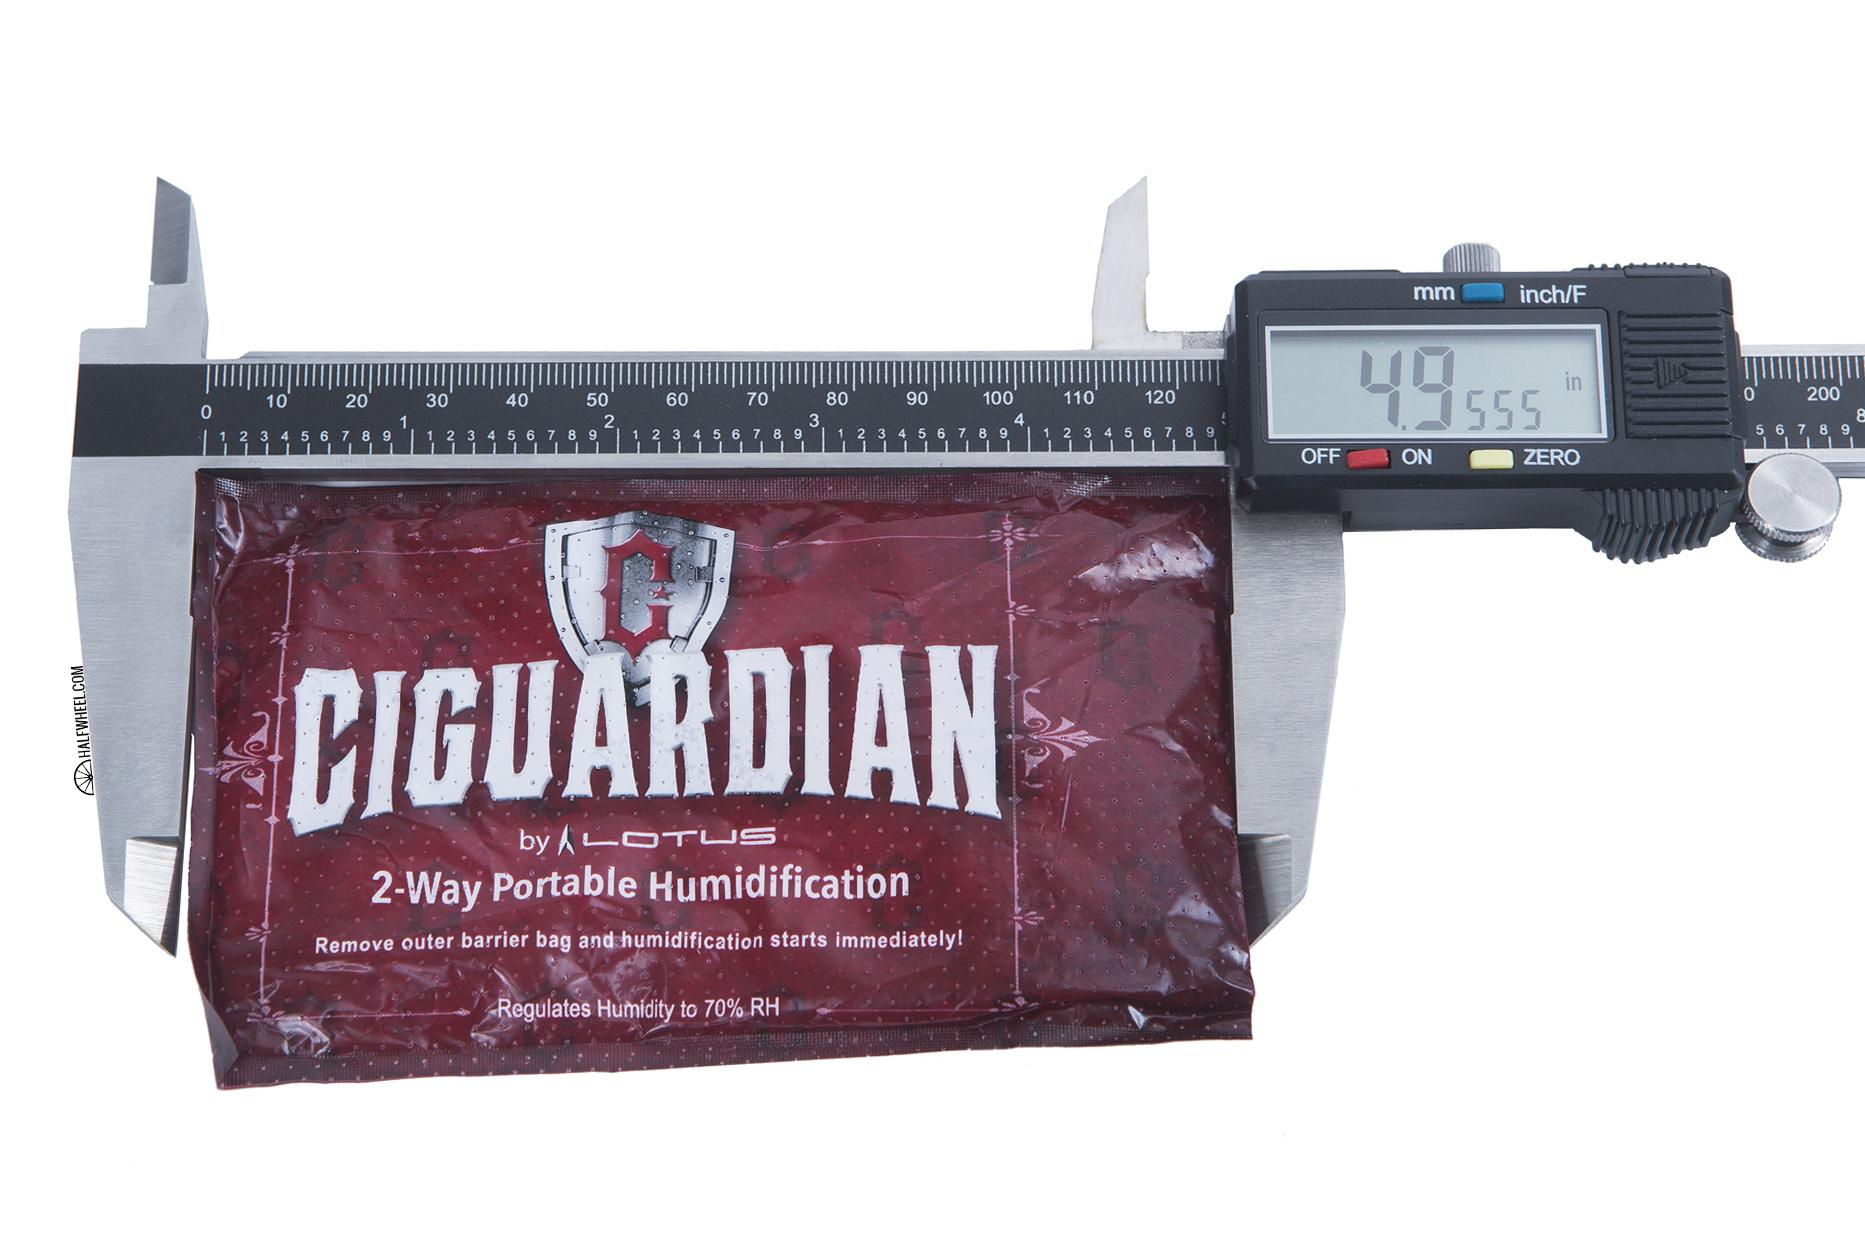 Ciguardian Humidification Pack width